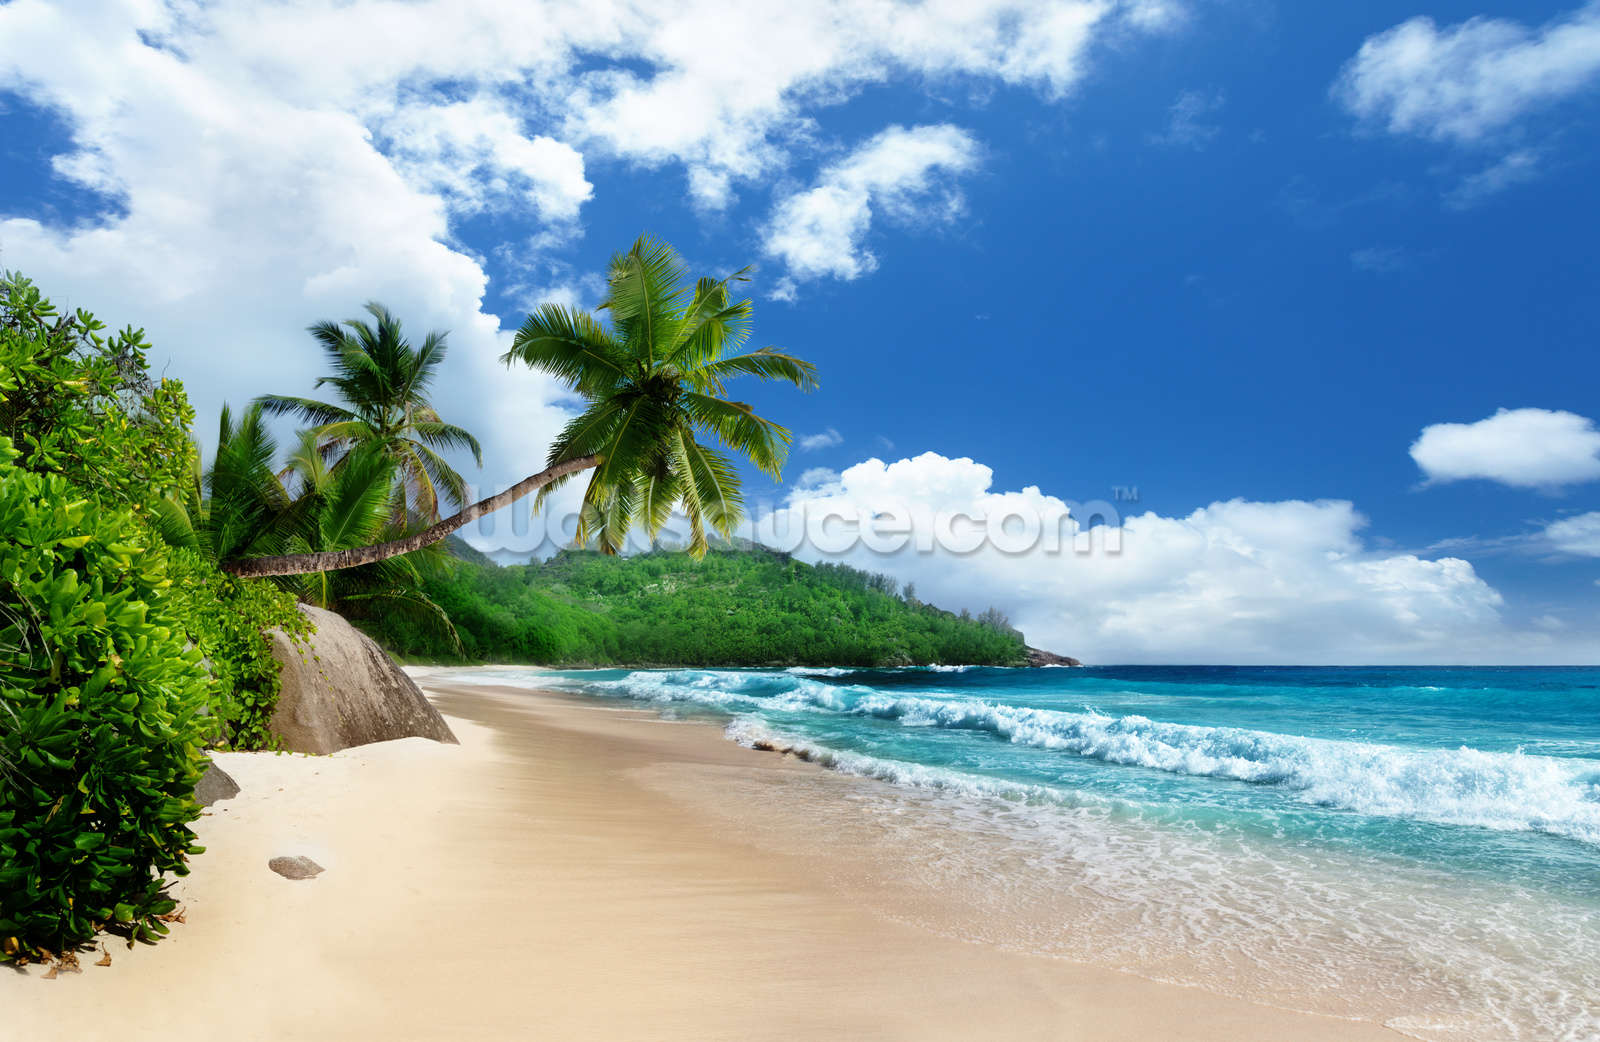 Mahe Island Beach Seychelles Wallpaper Wall Mural